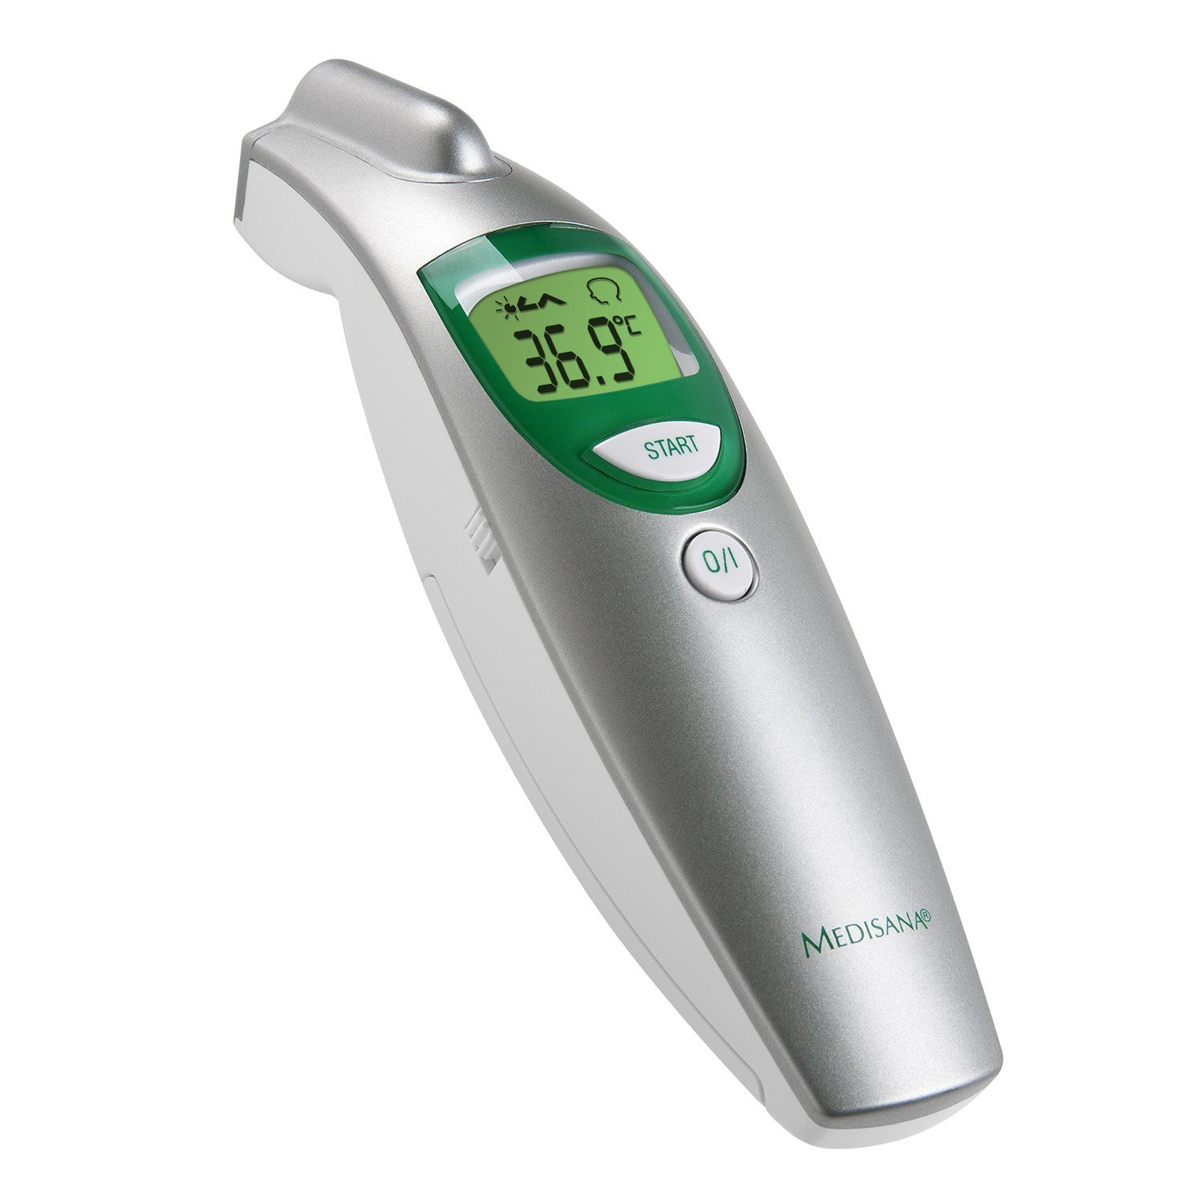 Elektrisches Thermometer Medisana Infrarot Thermometer Ftn 06115595